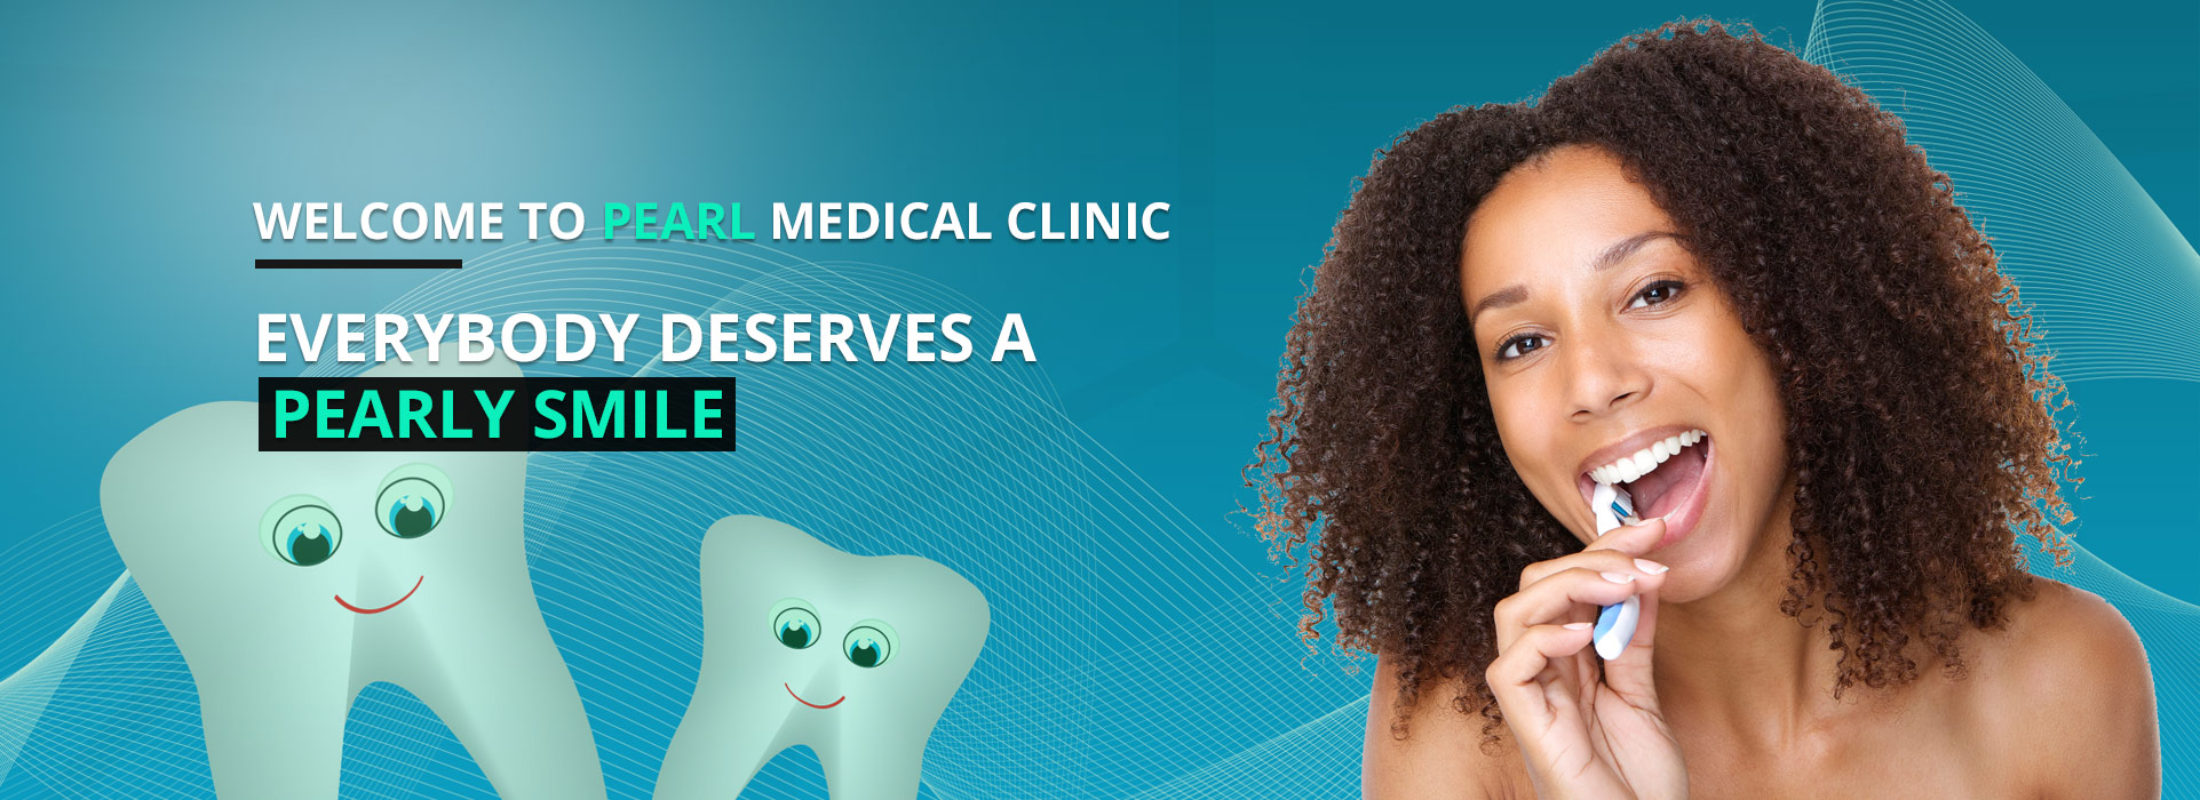 Pearl Medical Clinic- Dental Clinic in Dubai-Blog Page